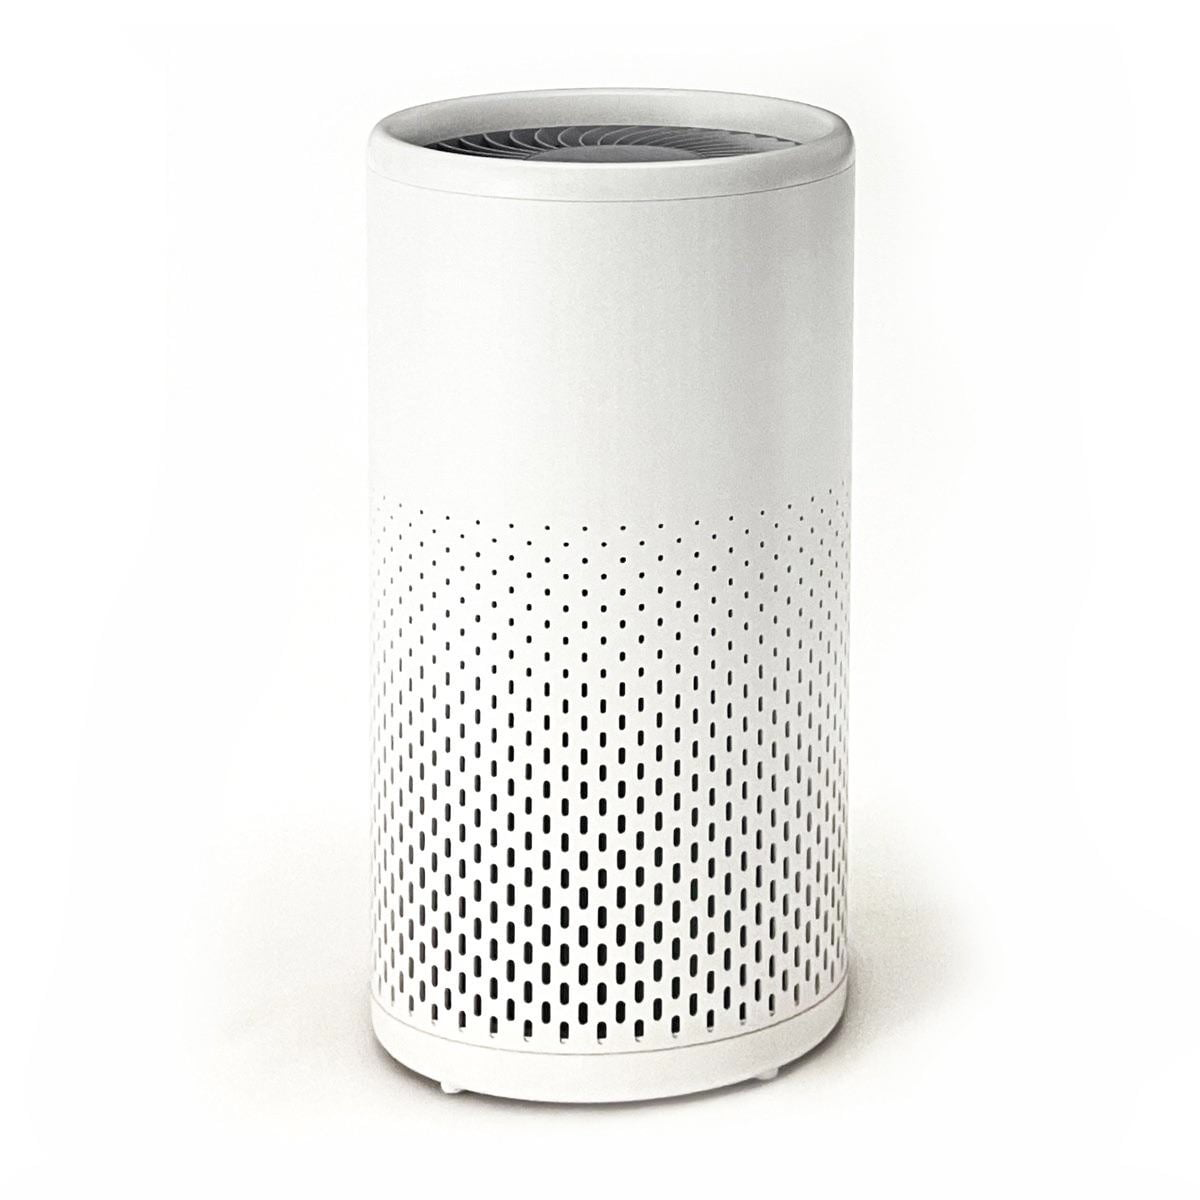 The new Meross HomeKit air purifier is expected to arrive